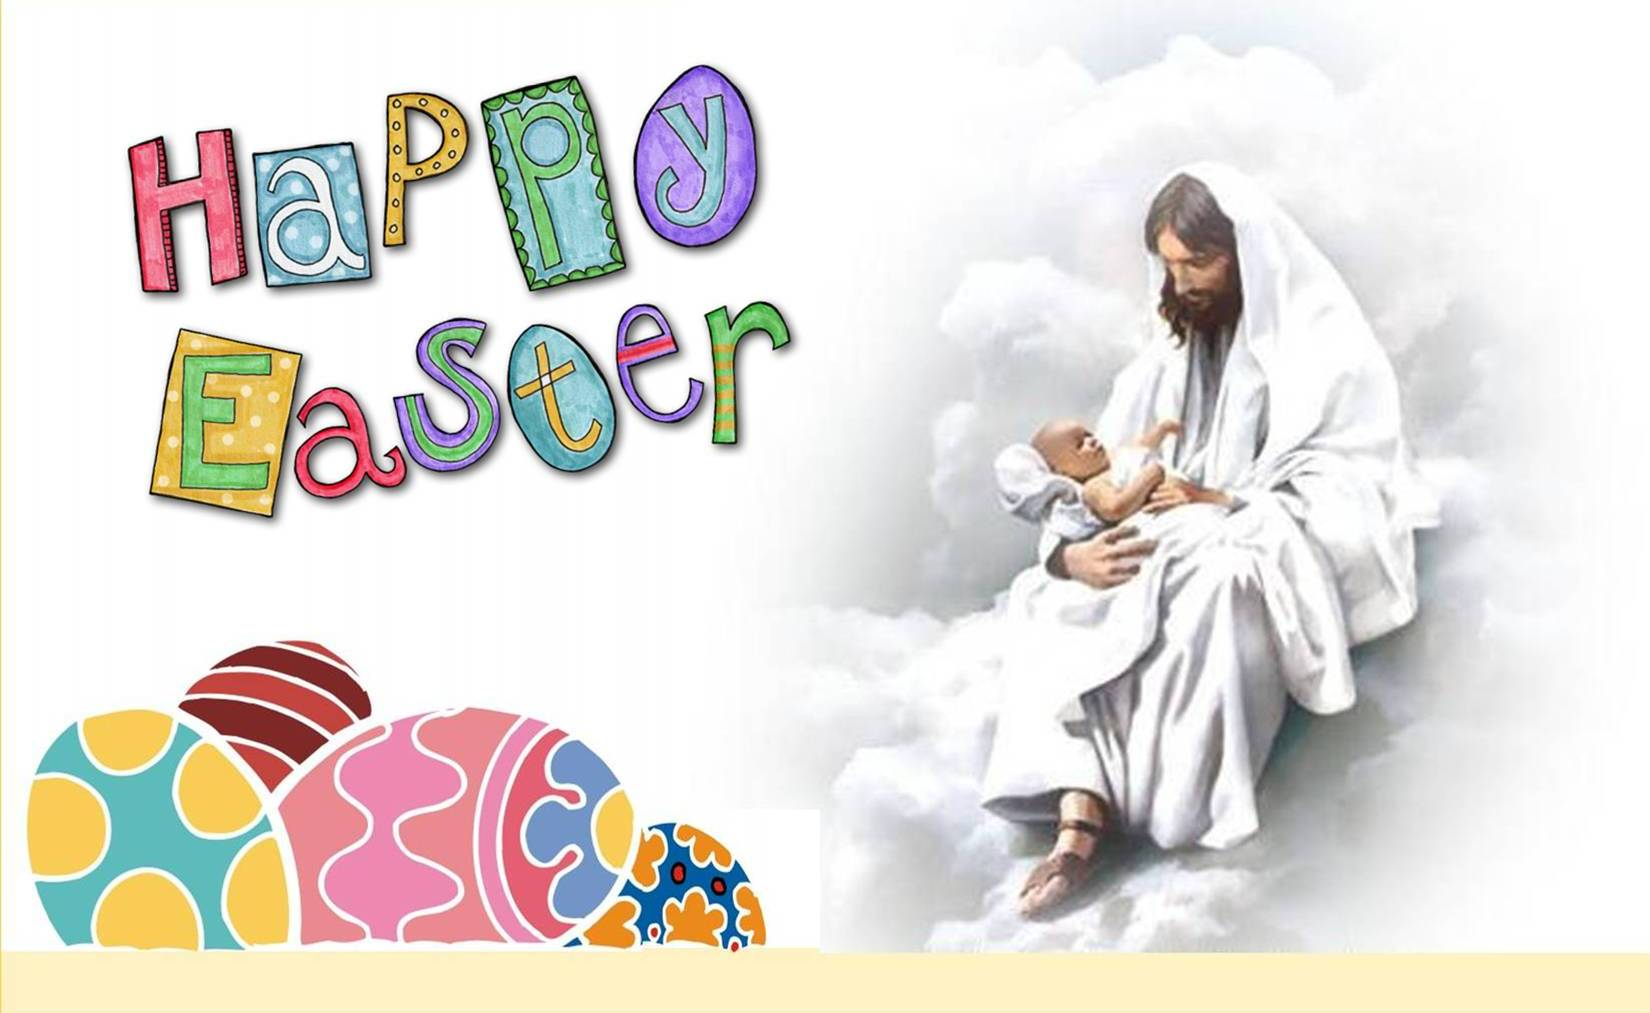 50 Very Beautiful Easter Wish Pictures And Photos Easter Eggs Jesus